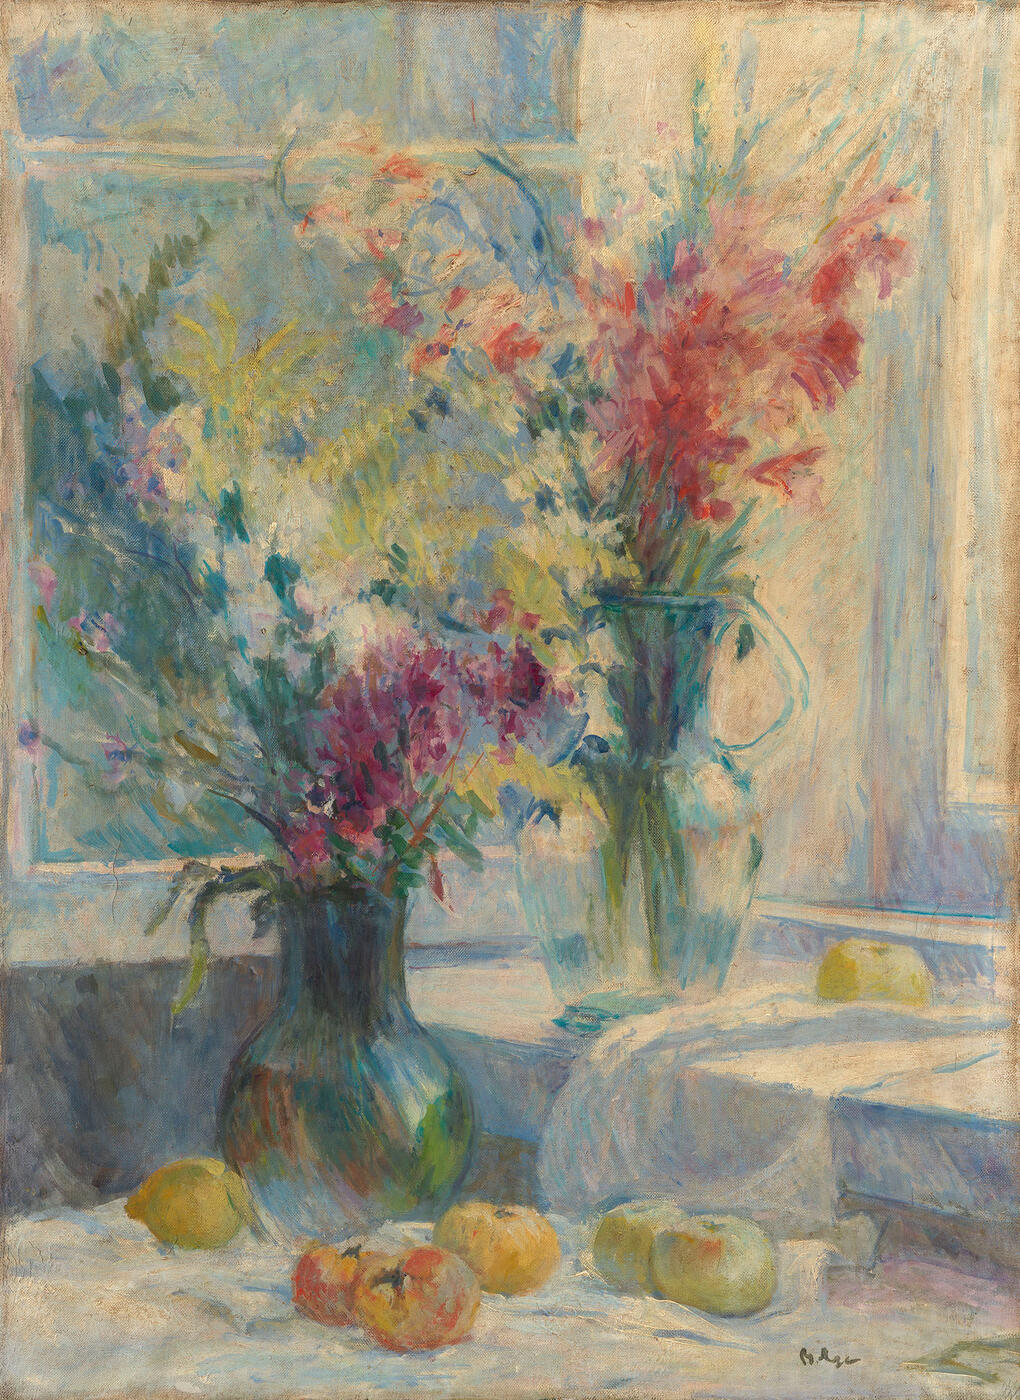 Still Life with Flowers in Two Vases